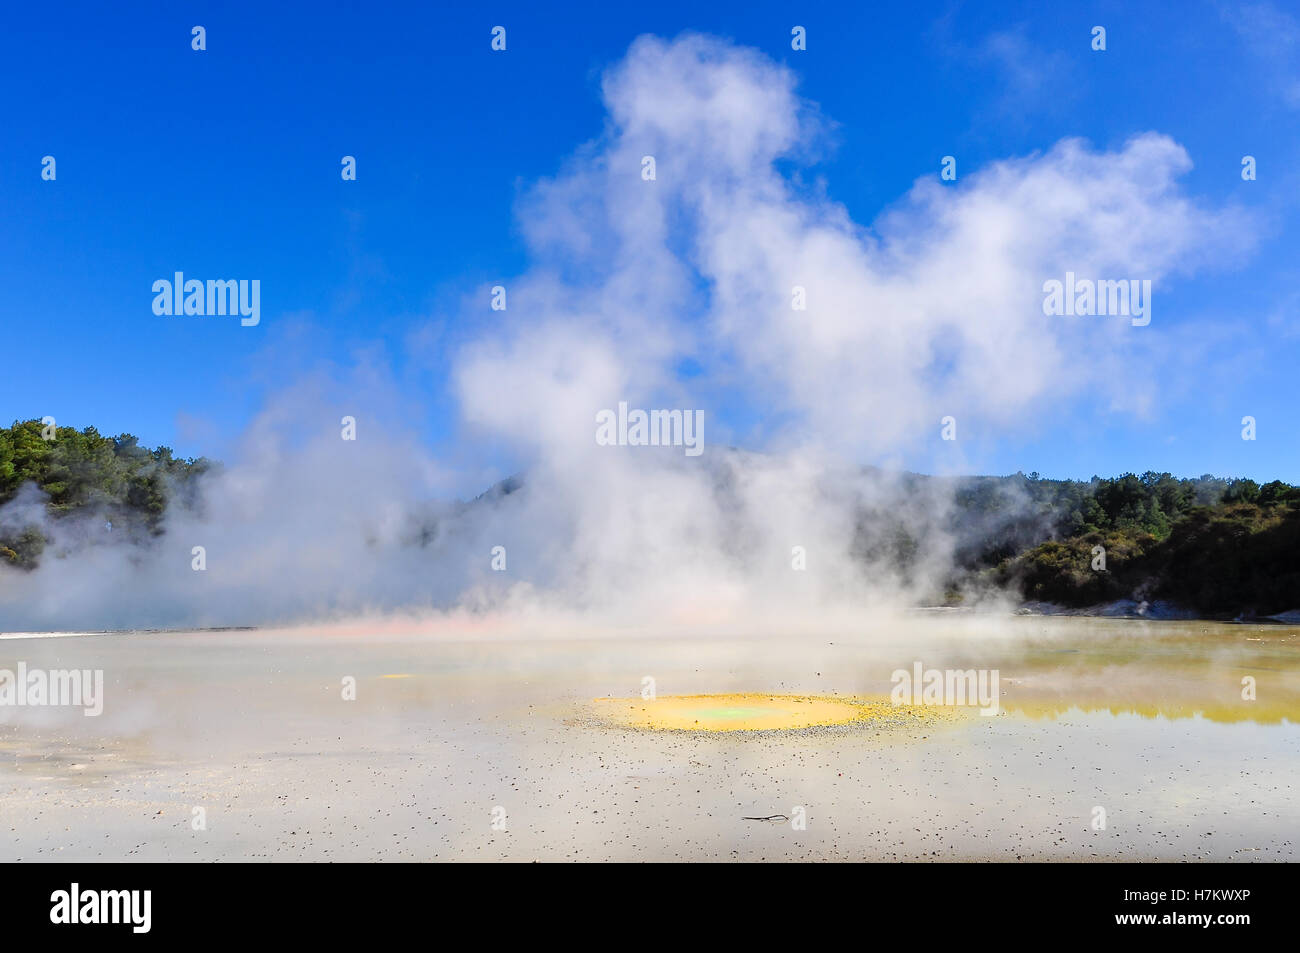 The Artist's Palette in the wonderland of the Wai-o-tapu geothermal area, near Rotorua, New Zealand - Stock Image